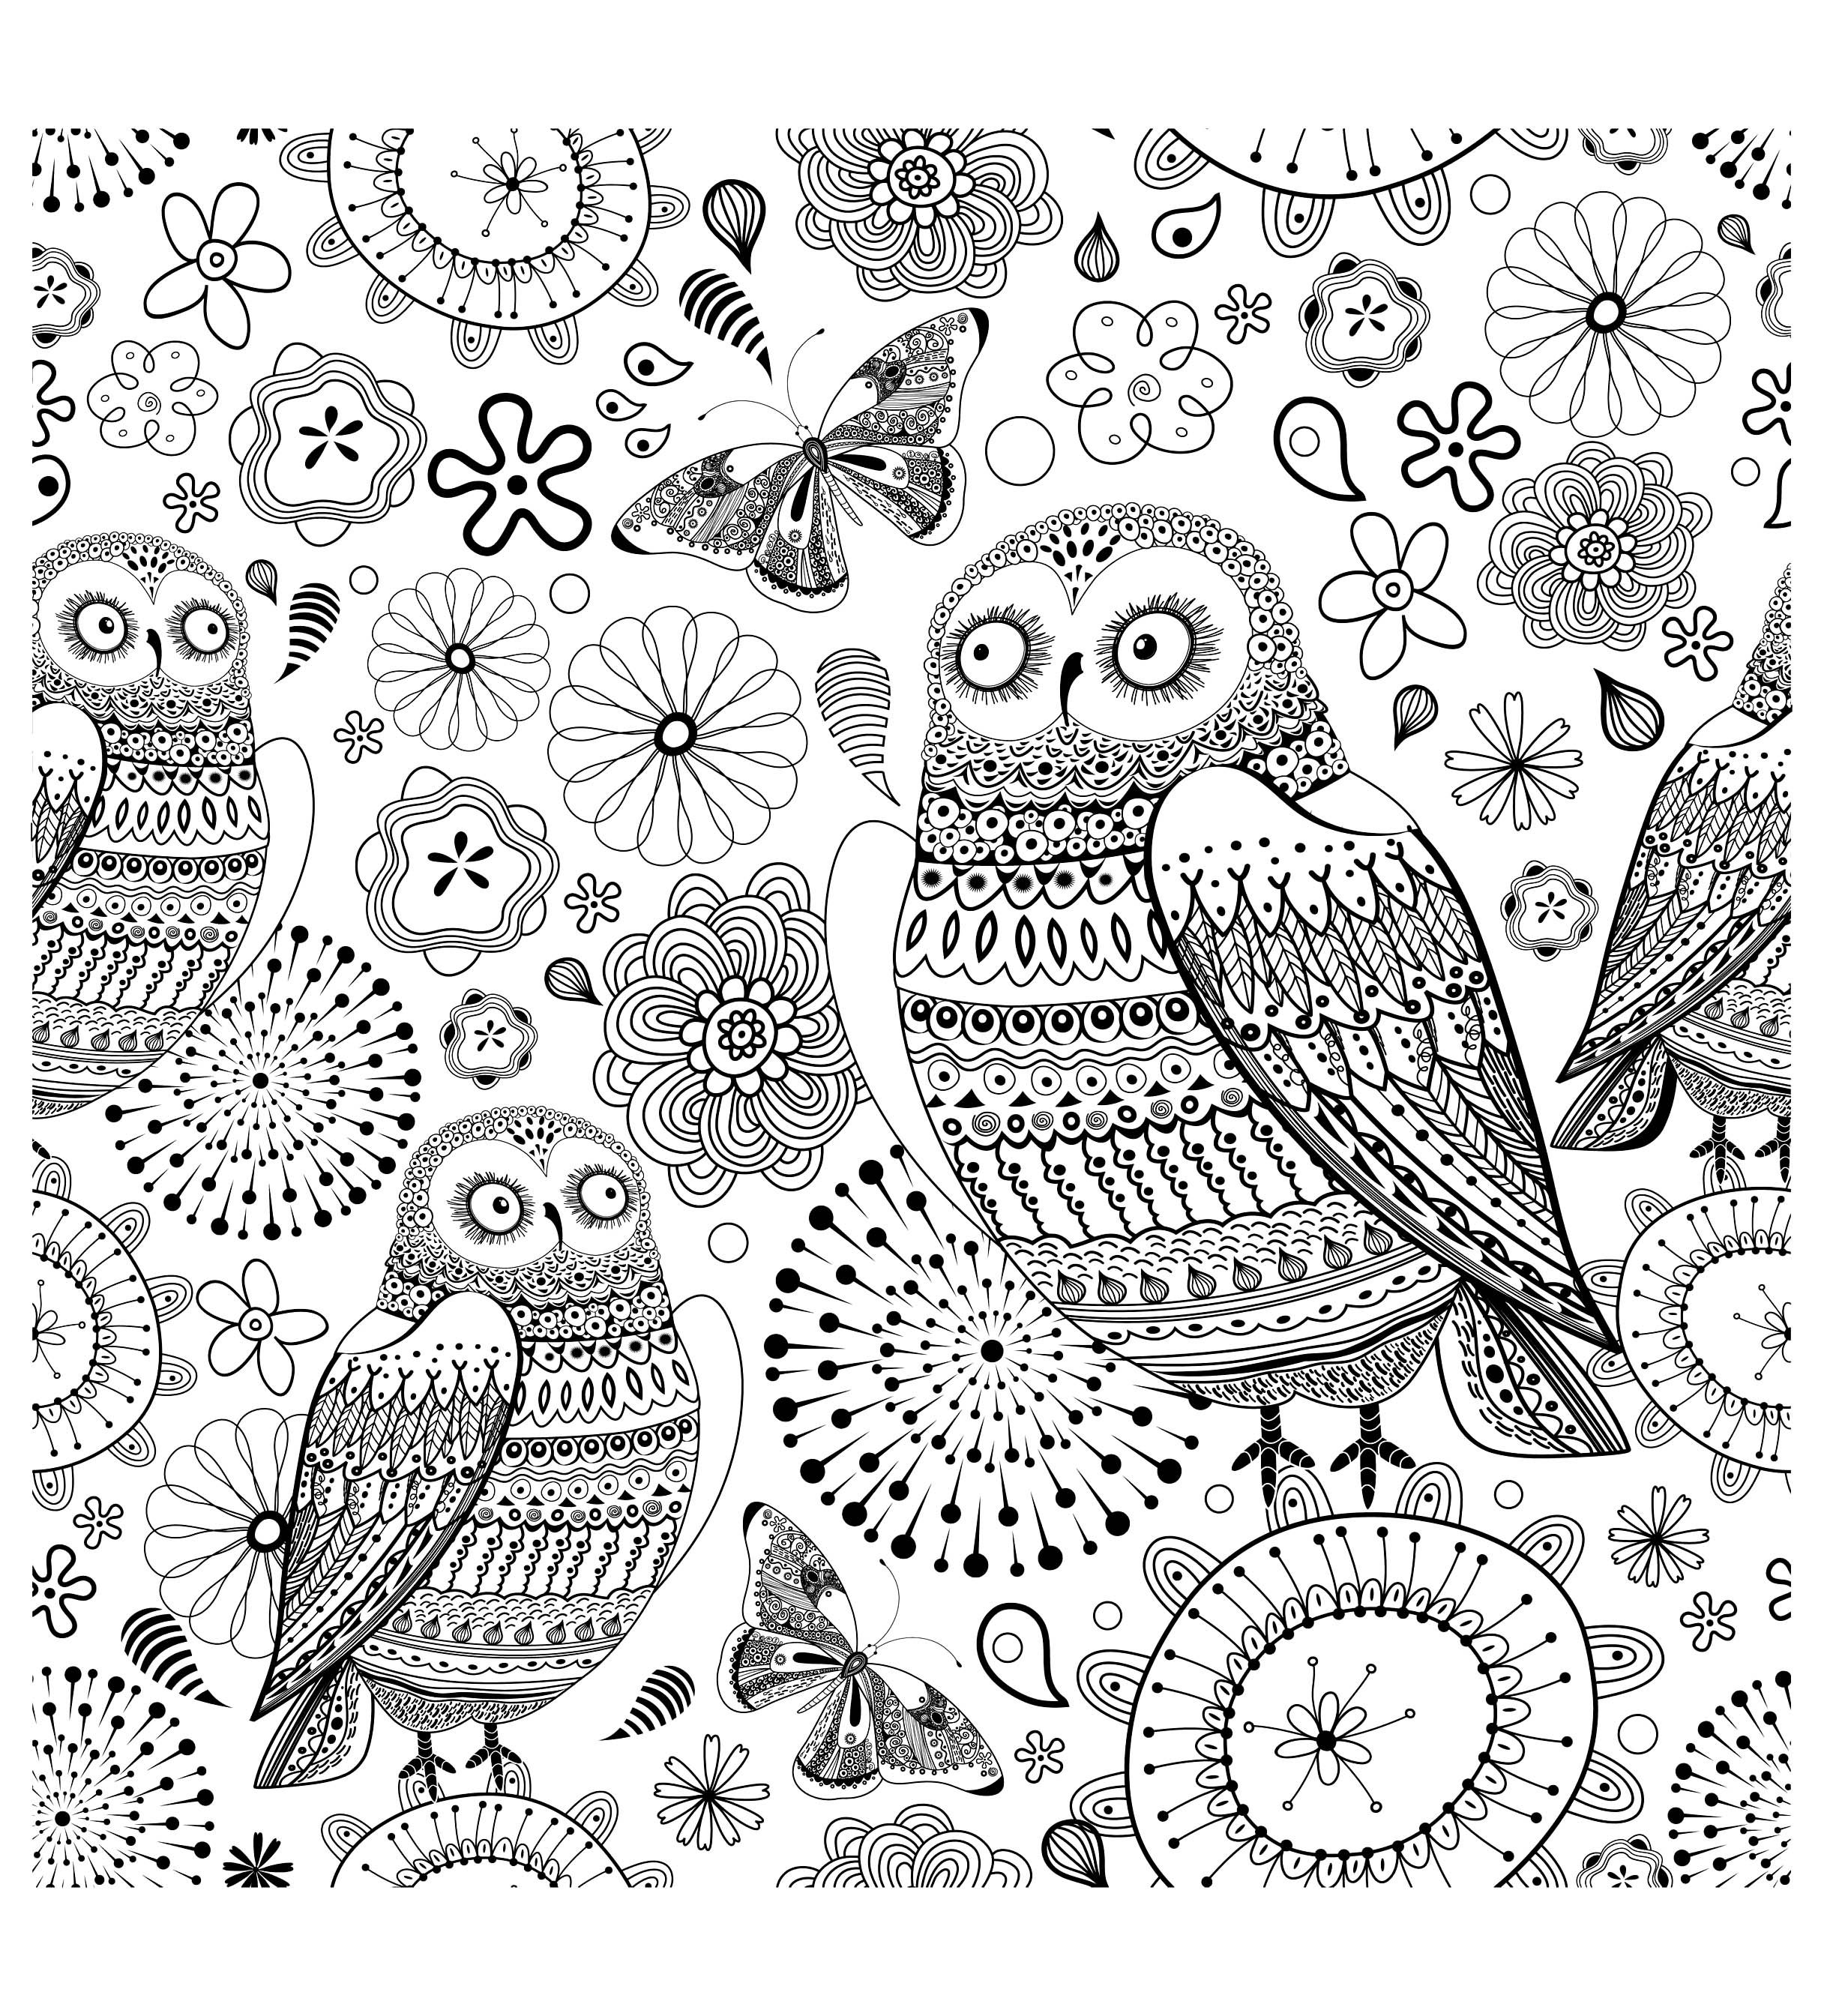 To Print This Free Coloring Page «coloring Difficult Owls» Click